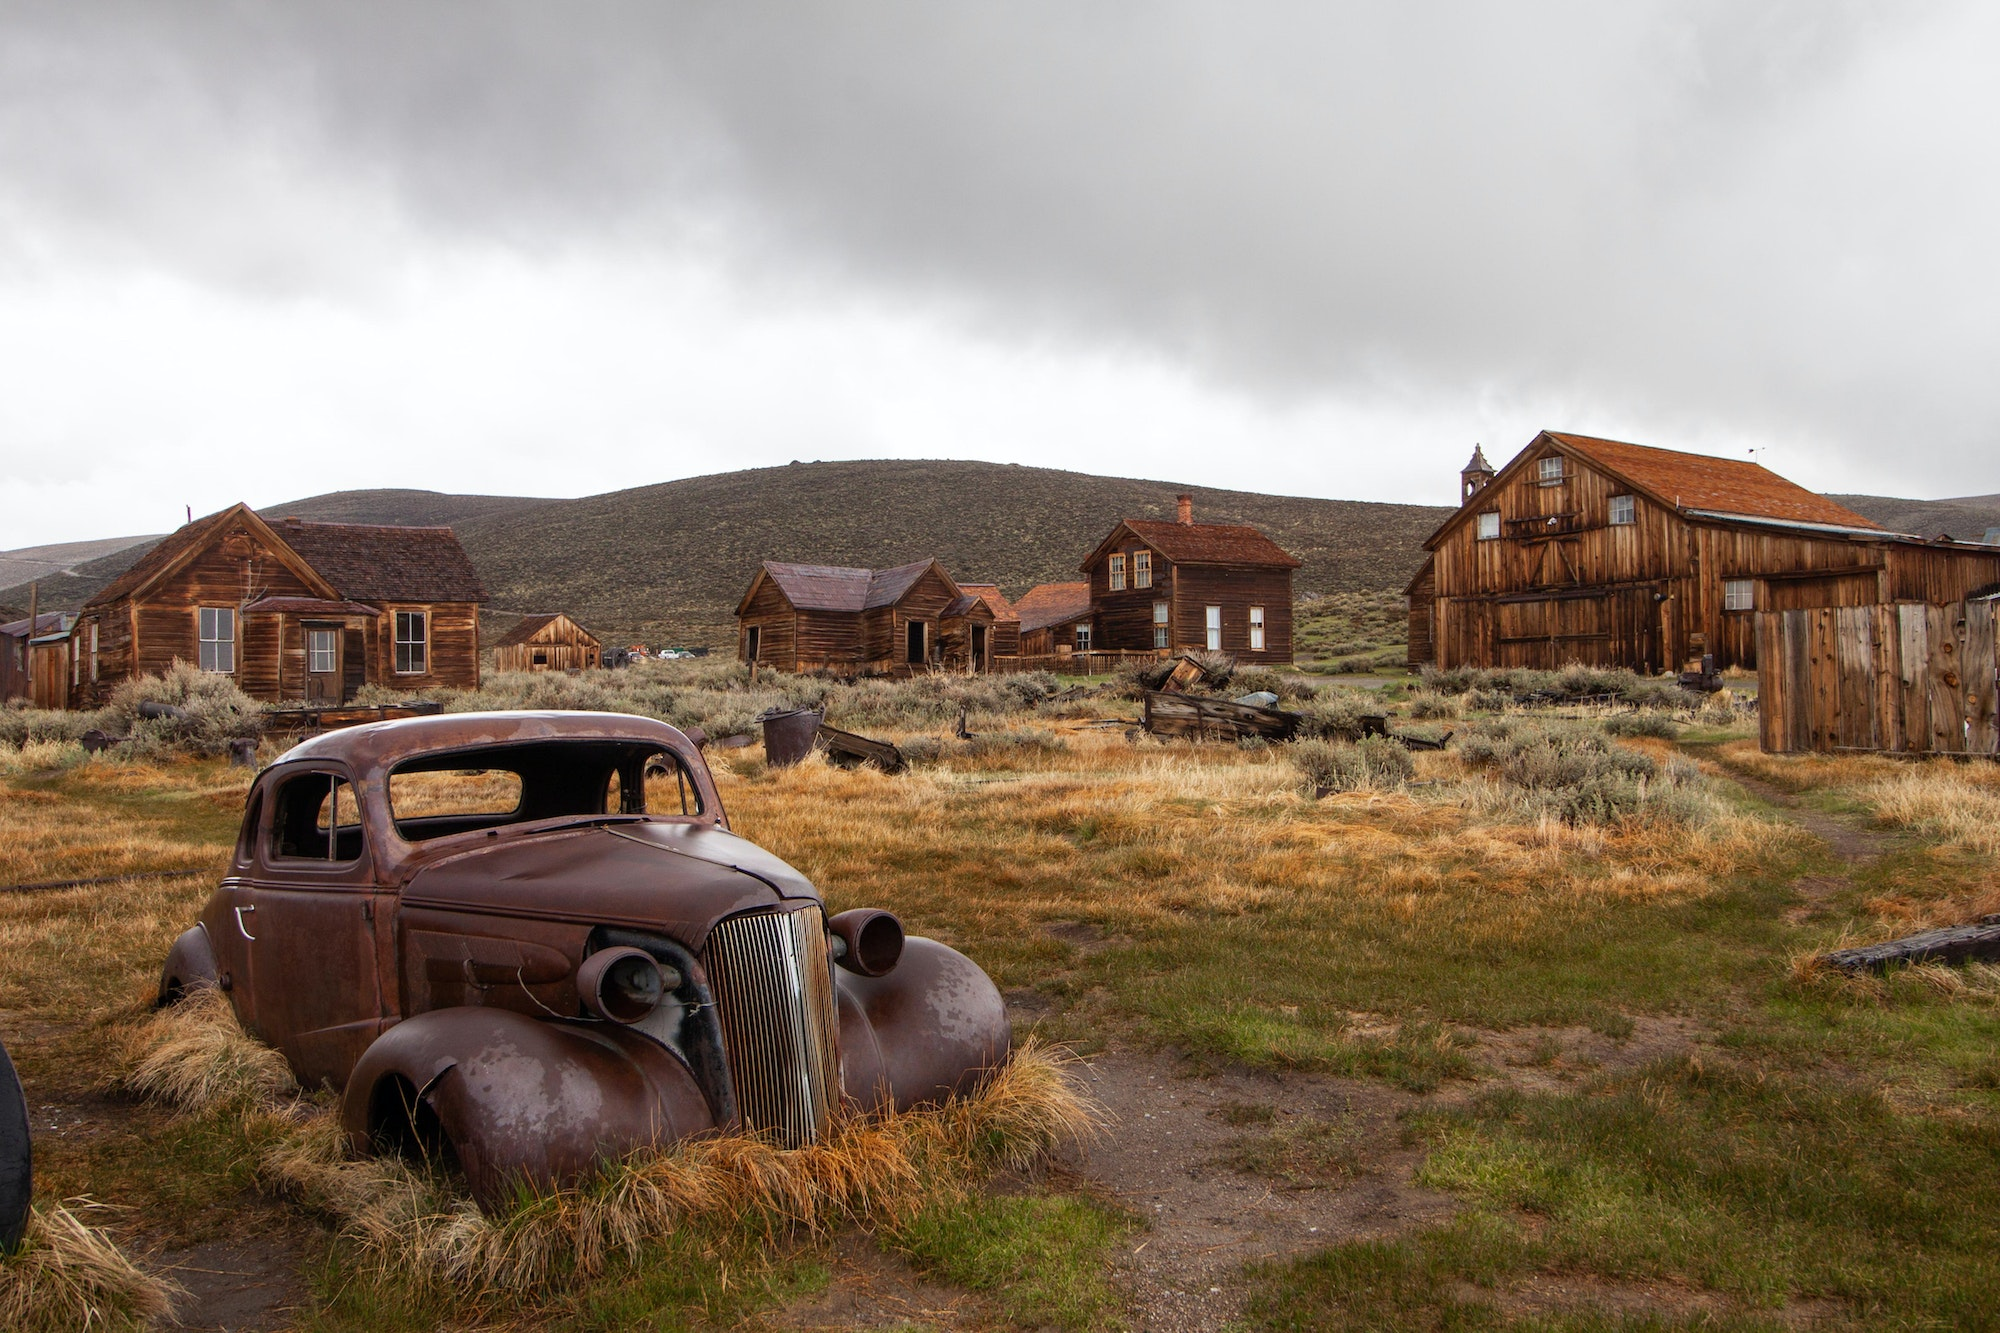 Bodie was a booming mining town during the Gold Rush in California.